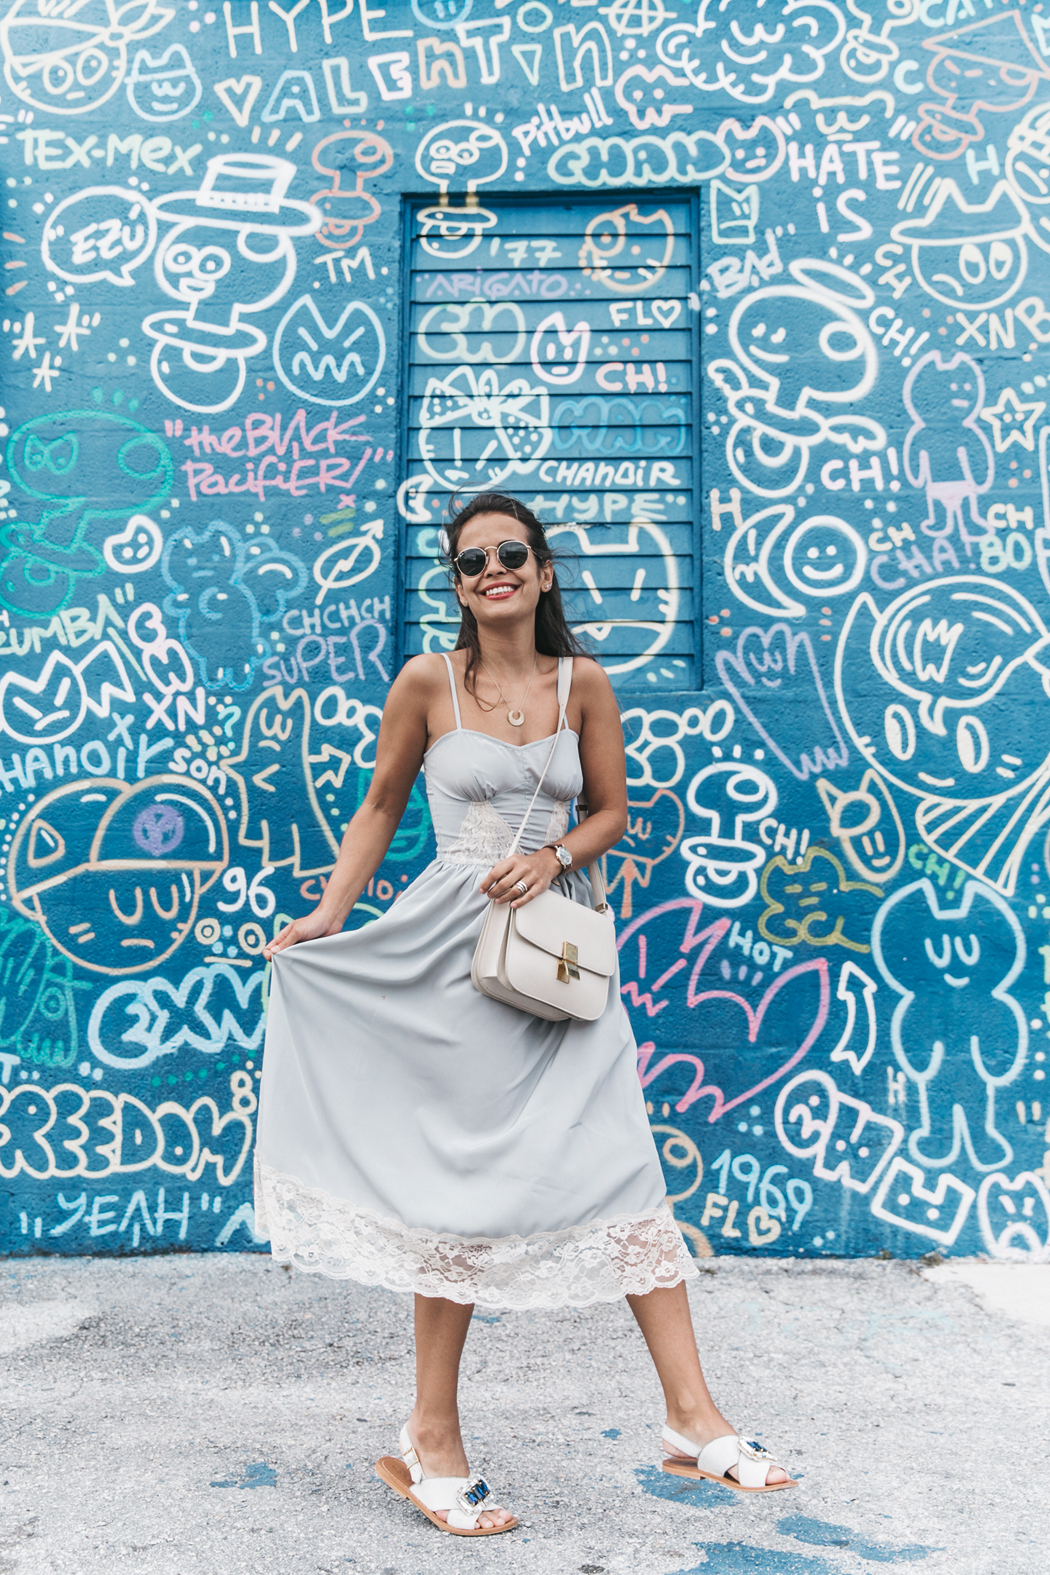 Miami-Lingerie_Dress-Marni_Sandals-Outfit-Collage_Vintage-Street_Style-Lace-22